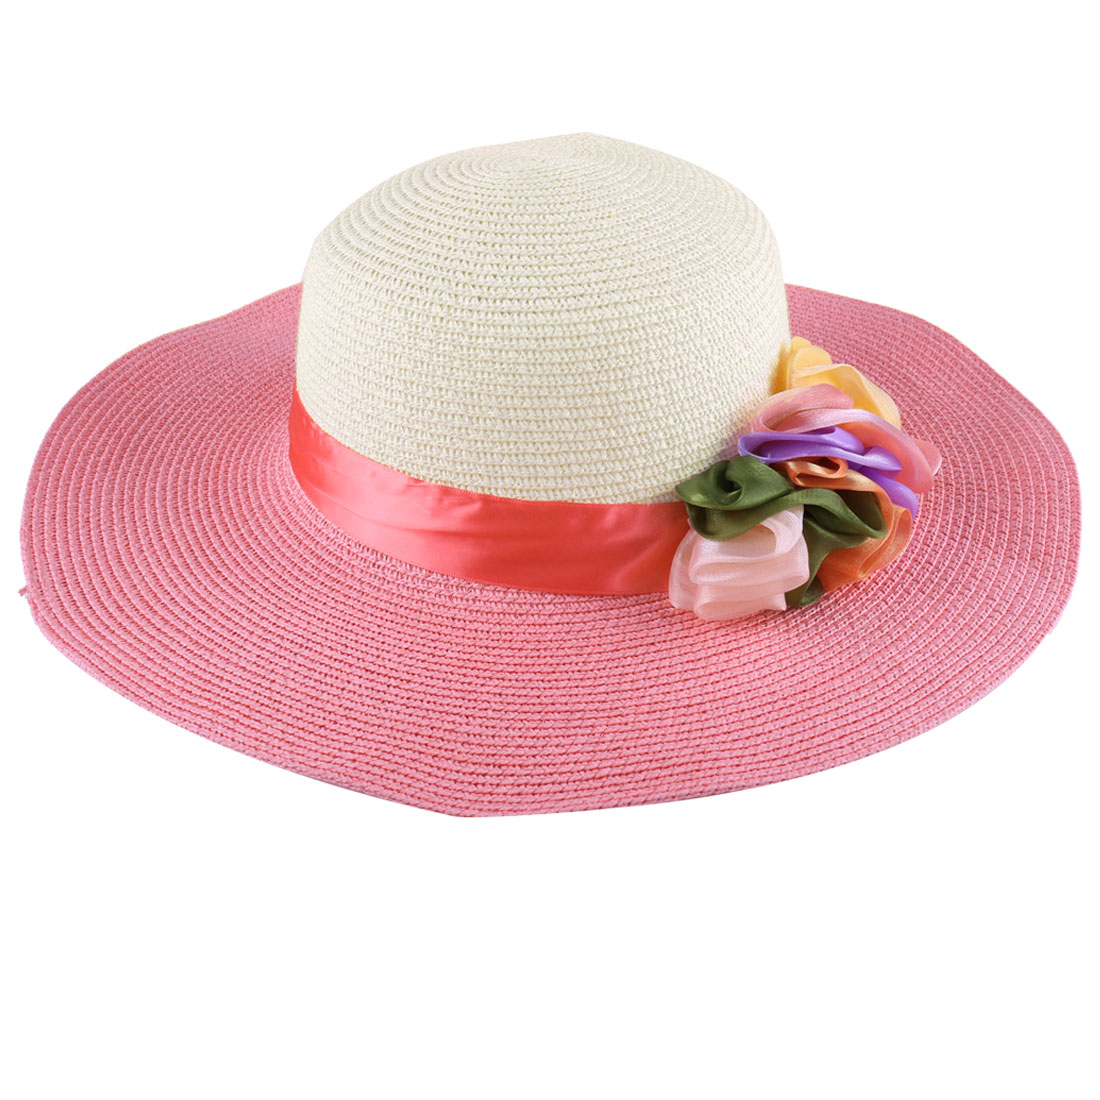 Ladies Fashion Manmade Colorful Flower Decor Coral Pink Off-White Sun Hat